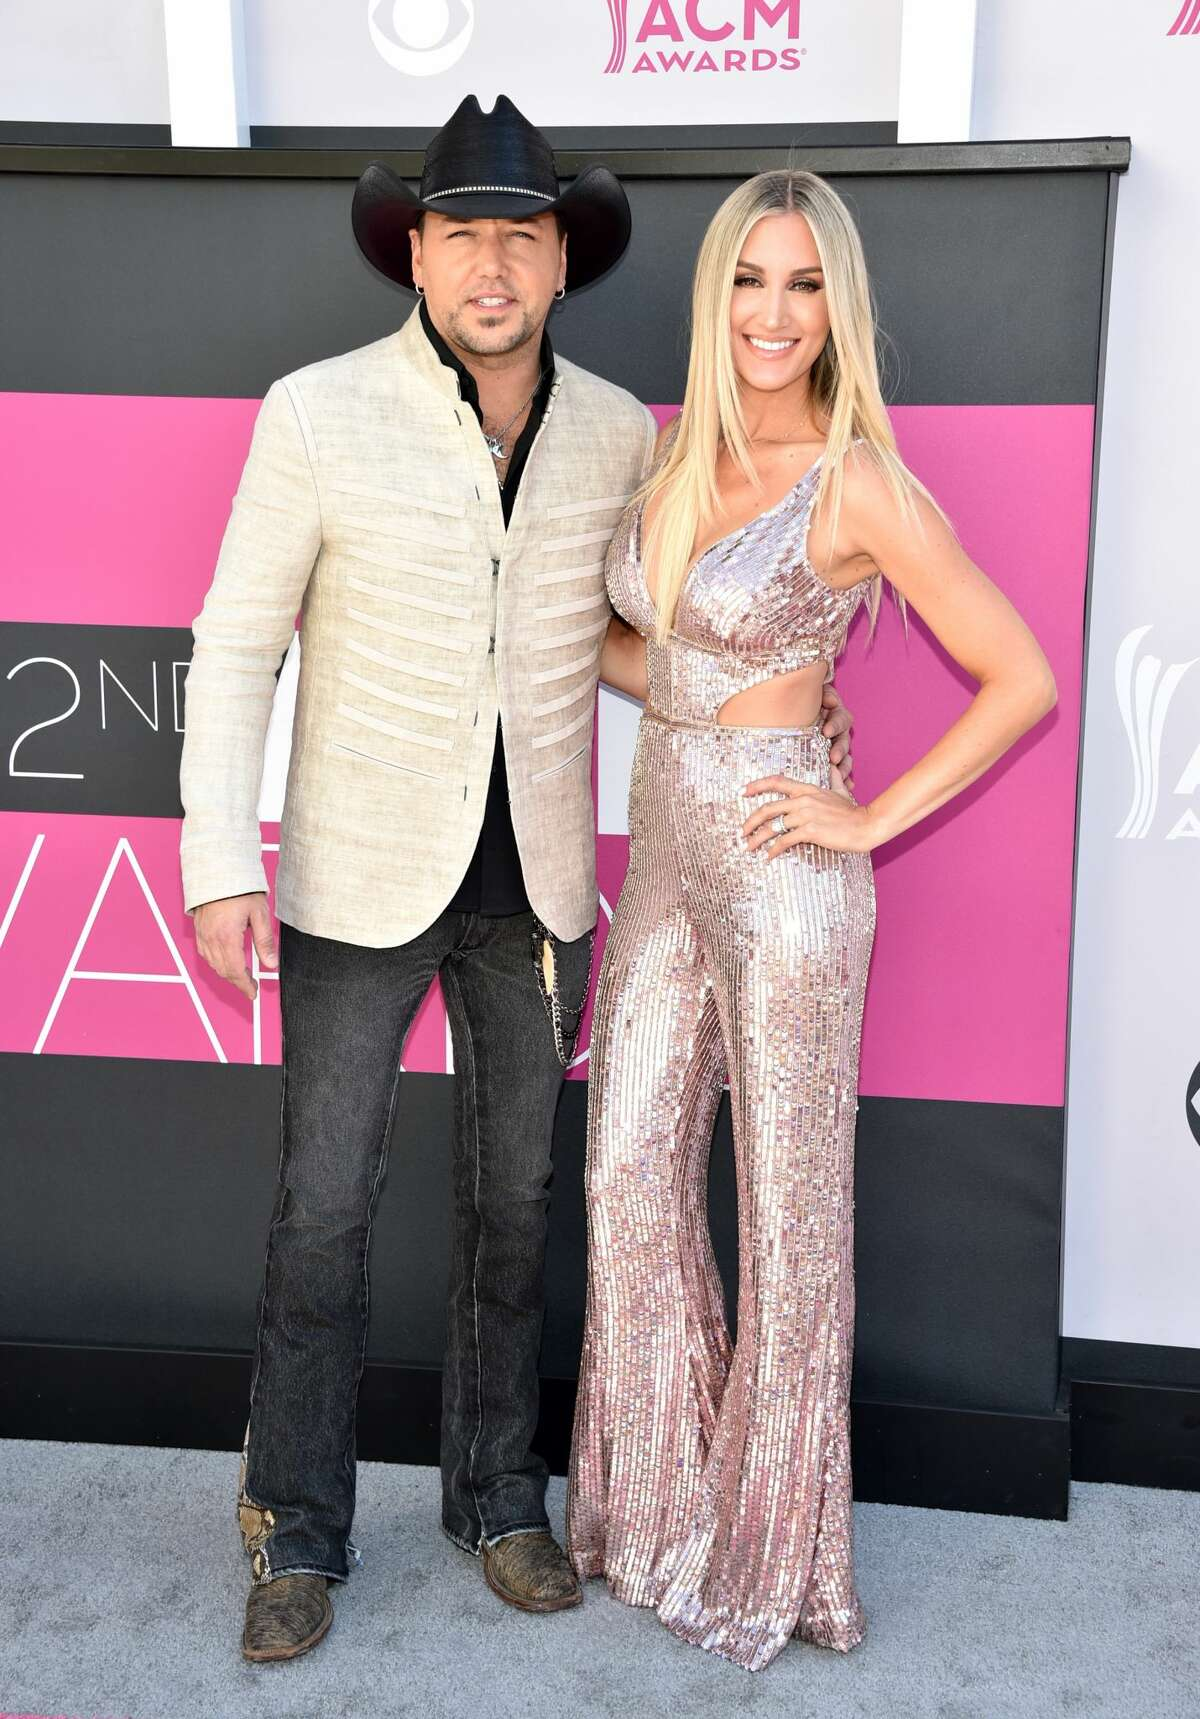 Worst: Jason Aldean (L) and Brittany Kerr look like a Las Vegas residency act.